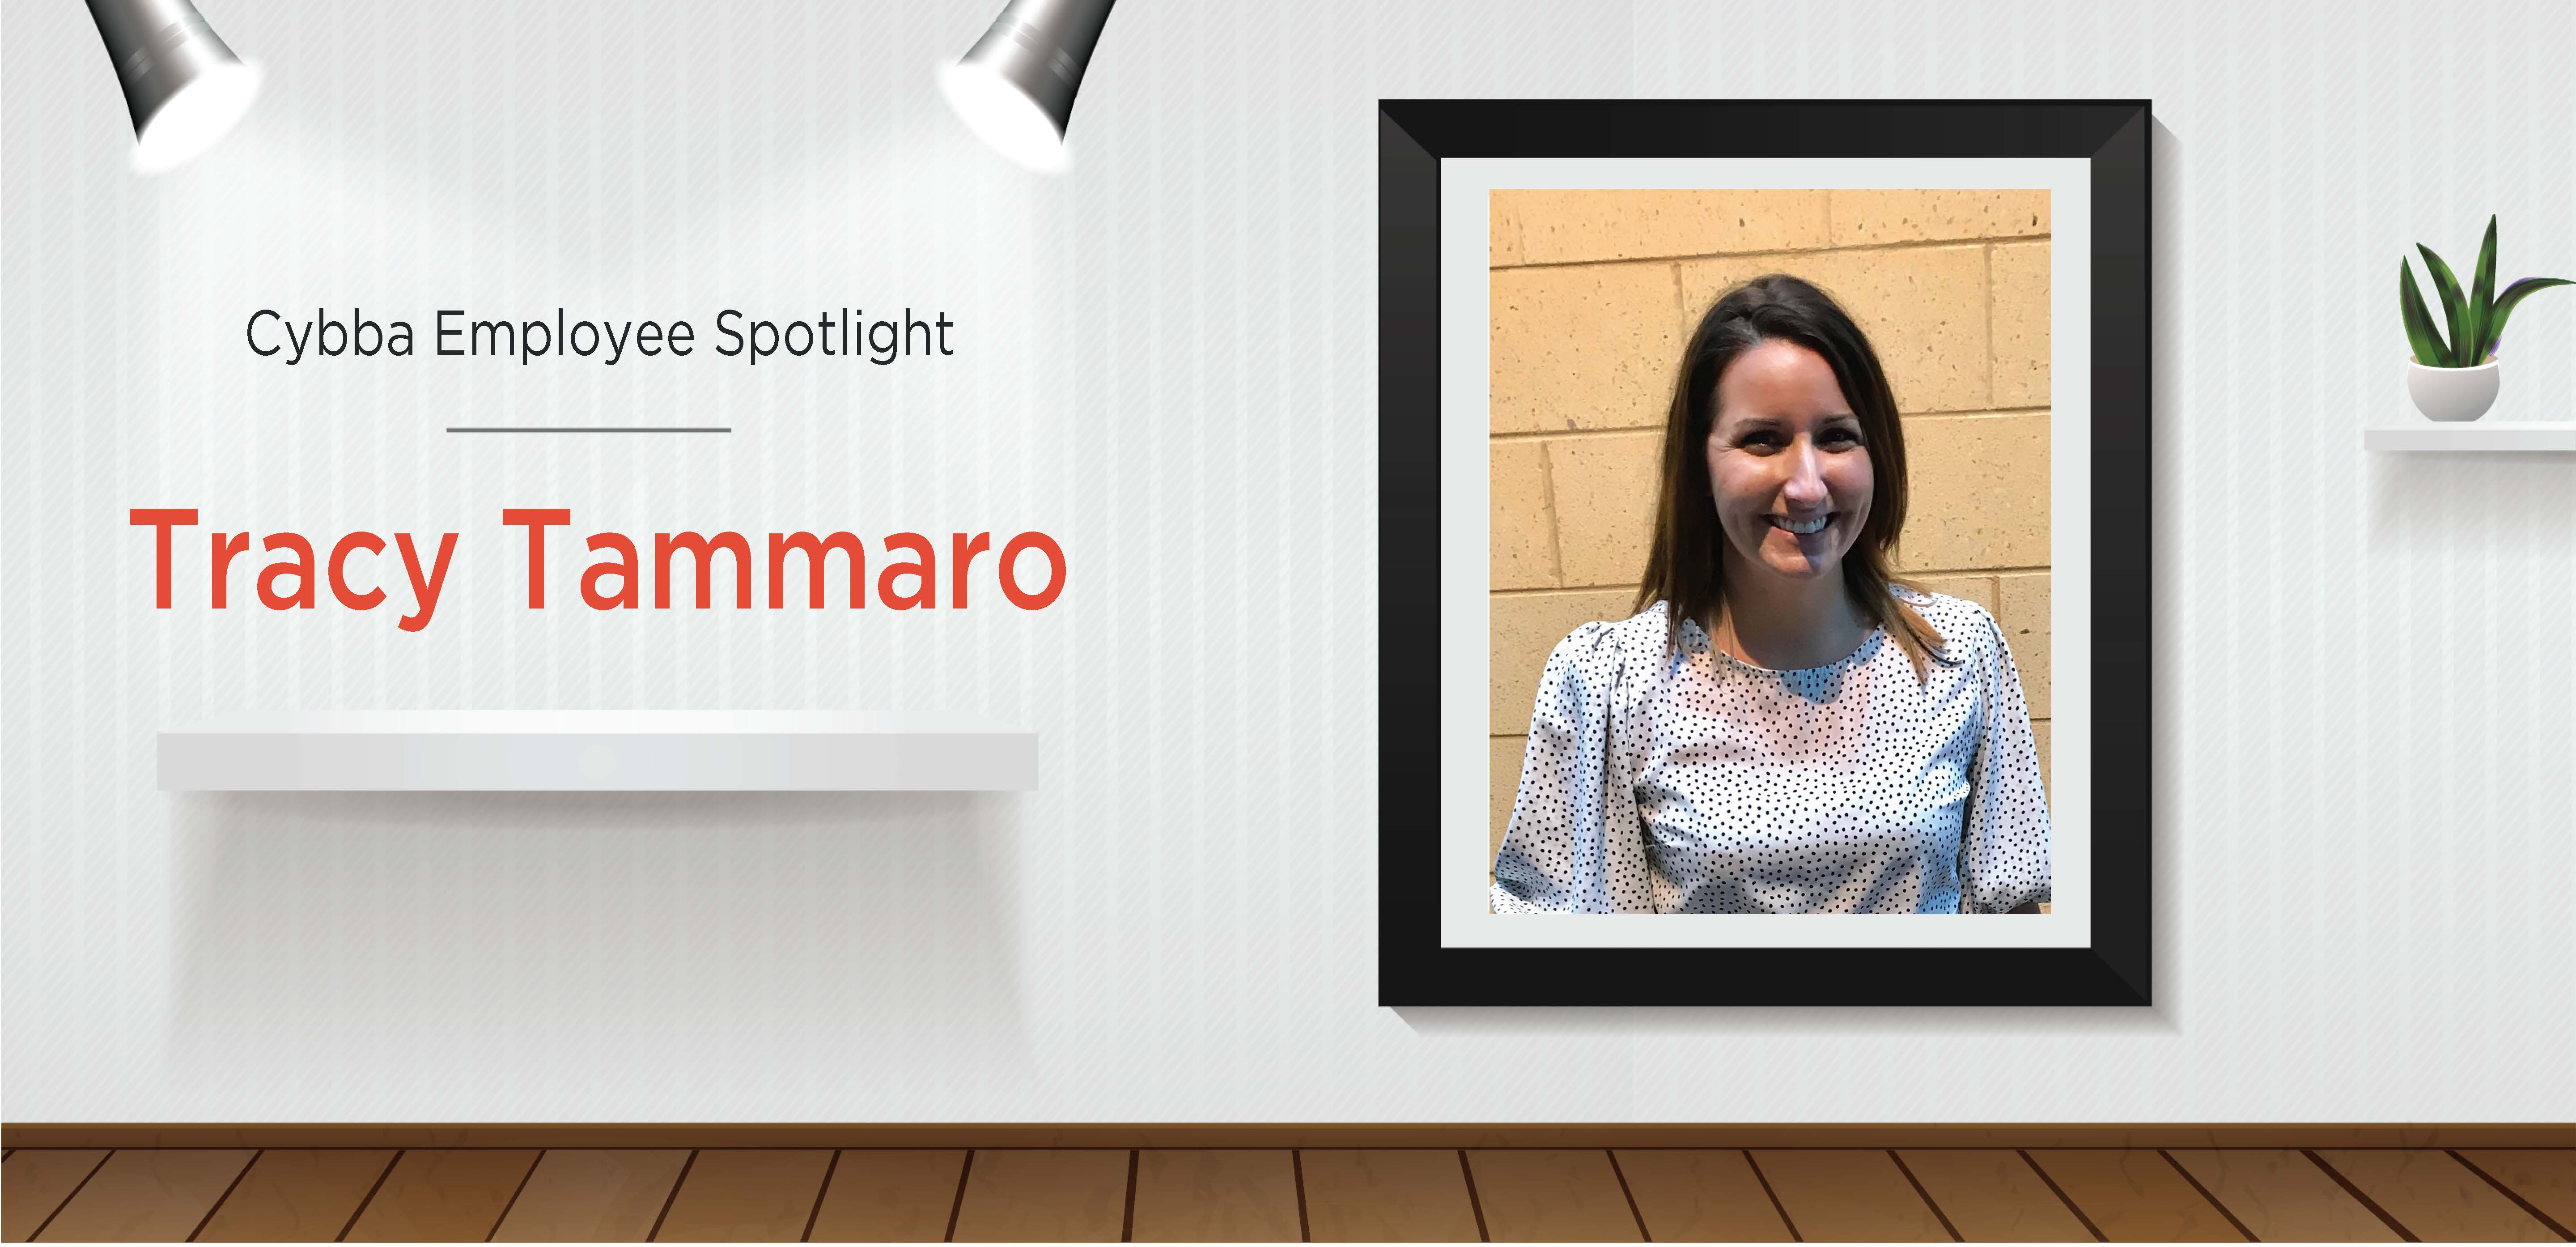 Employee Tracy Tammaro